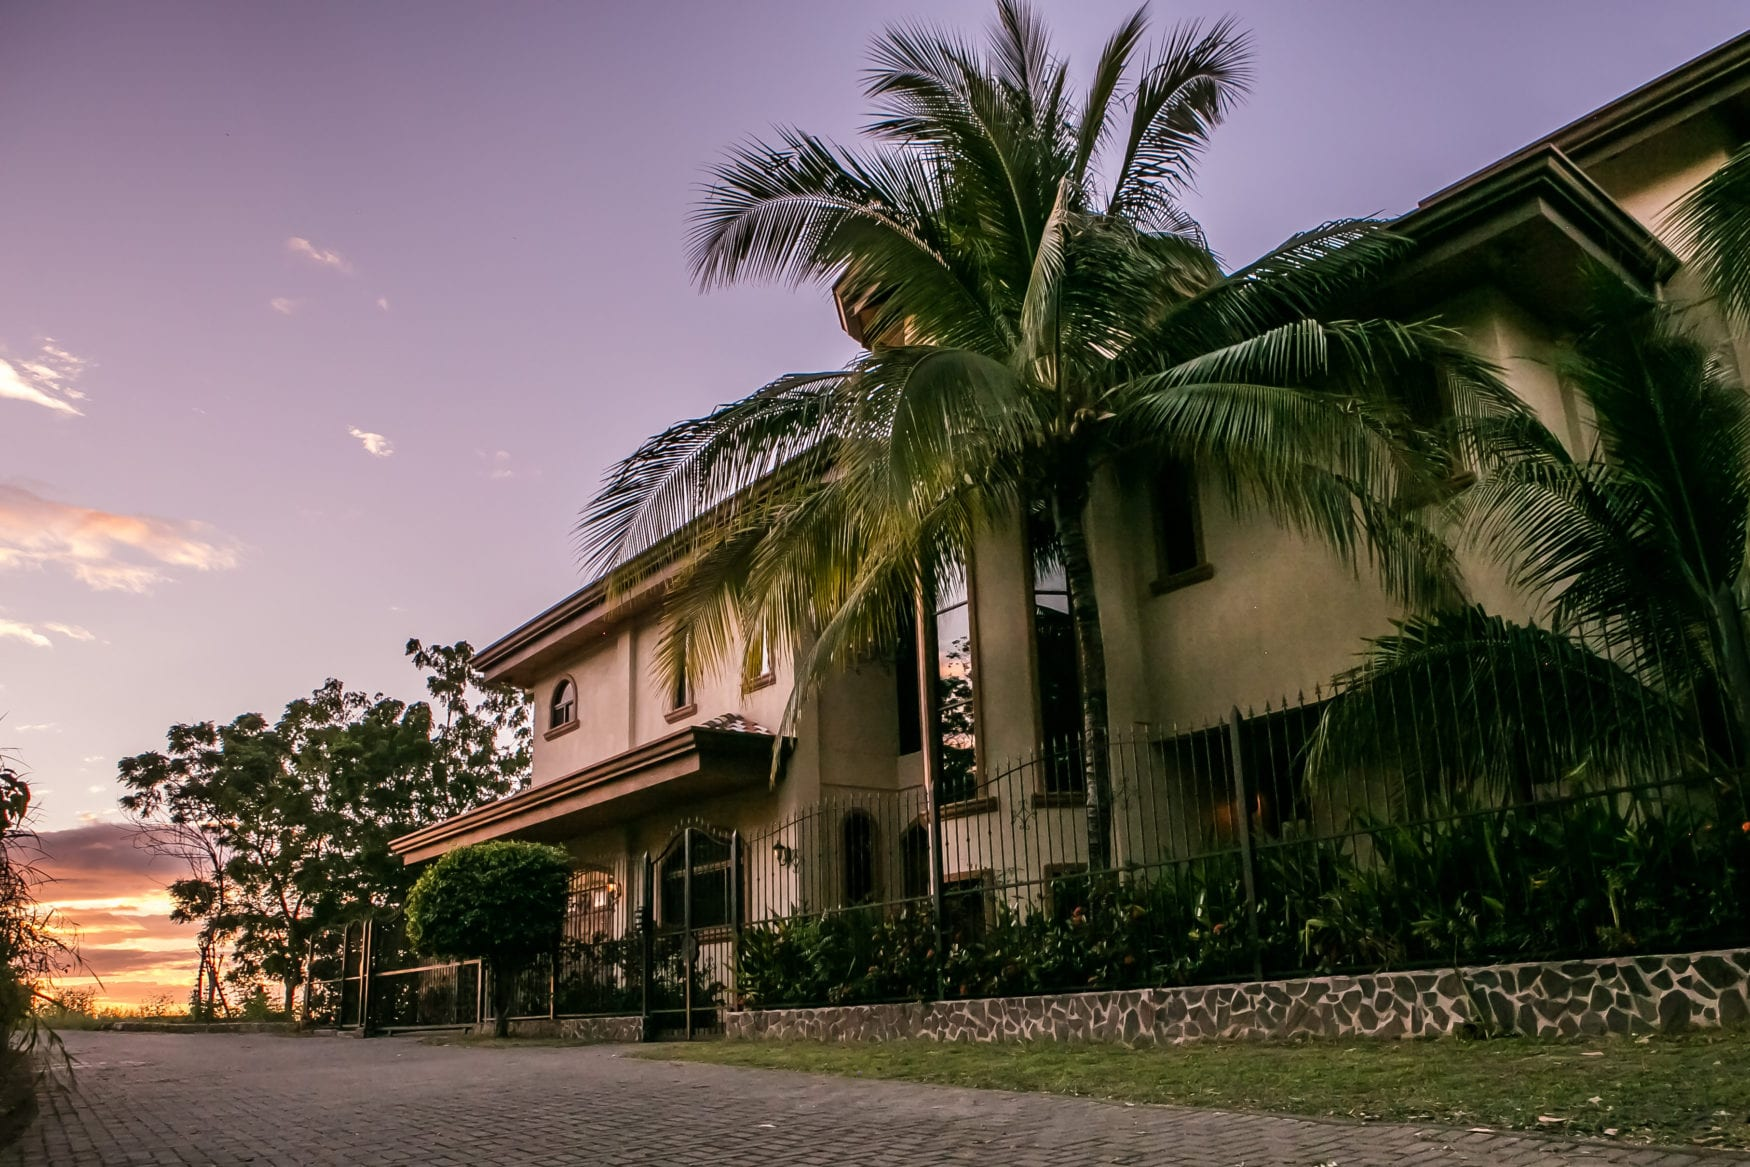 View More: http://tracymoorephotography.pass.us/costaricahouse